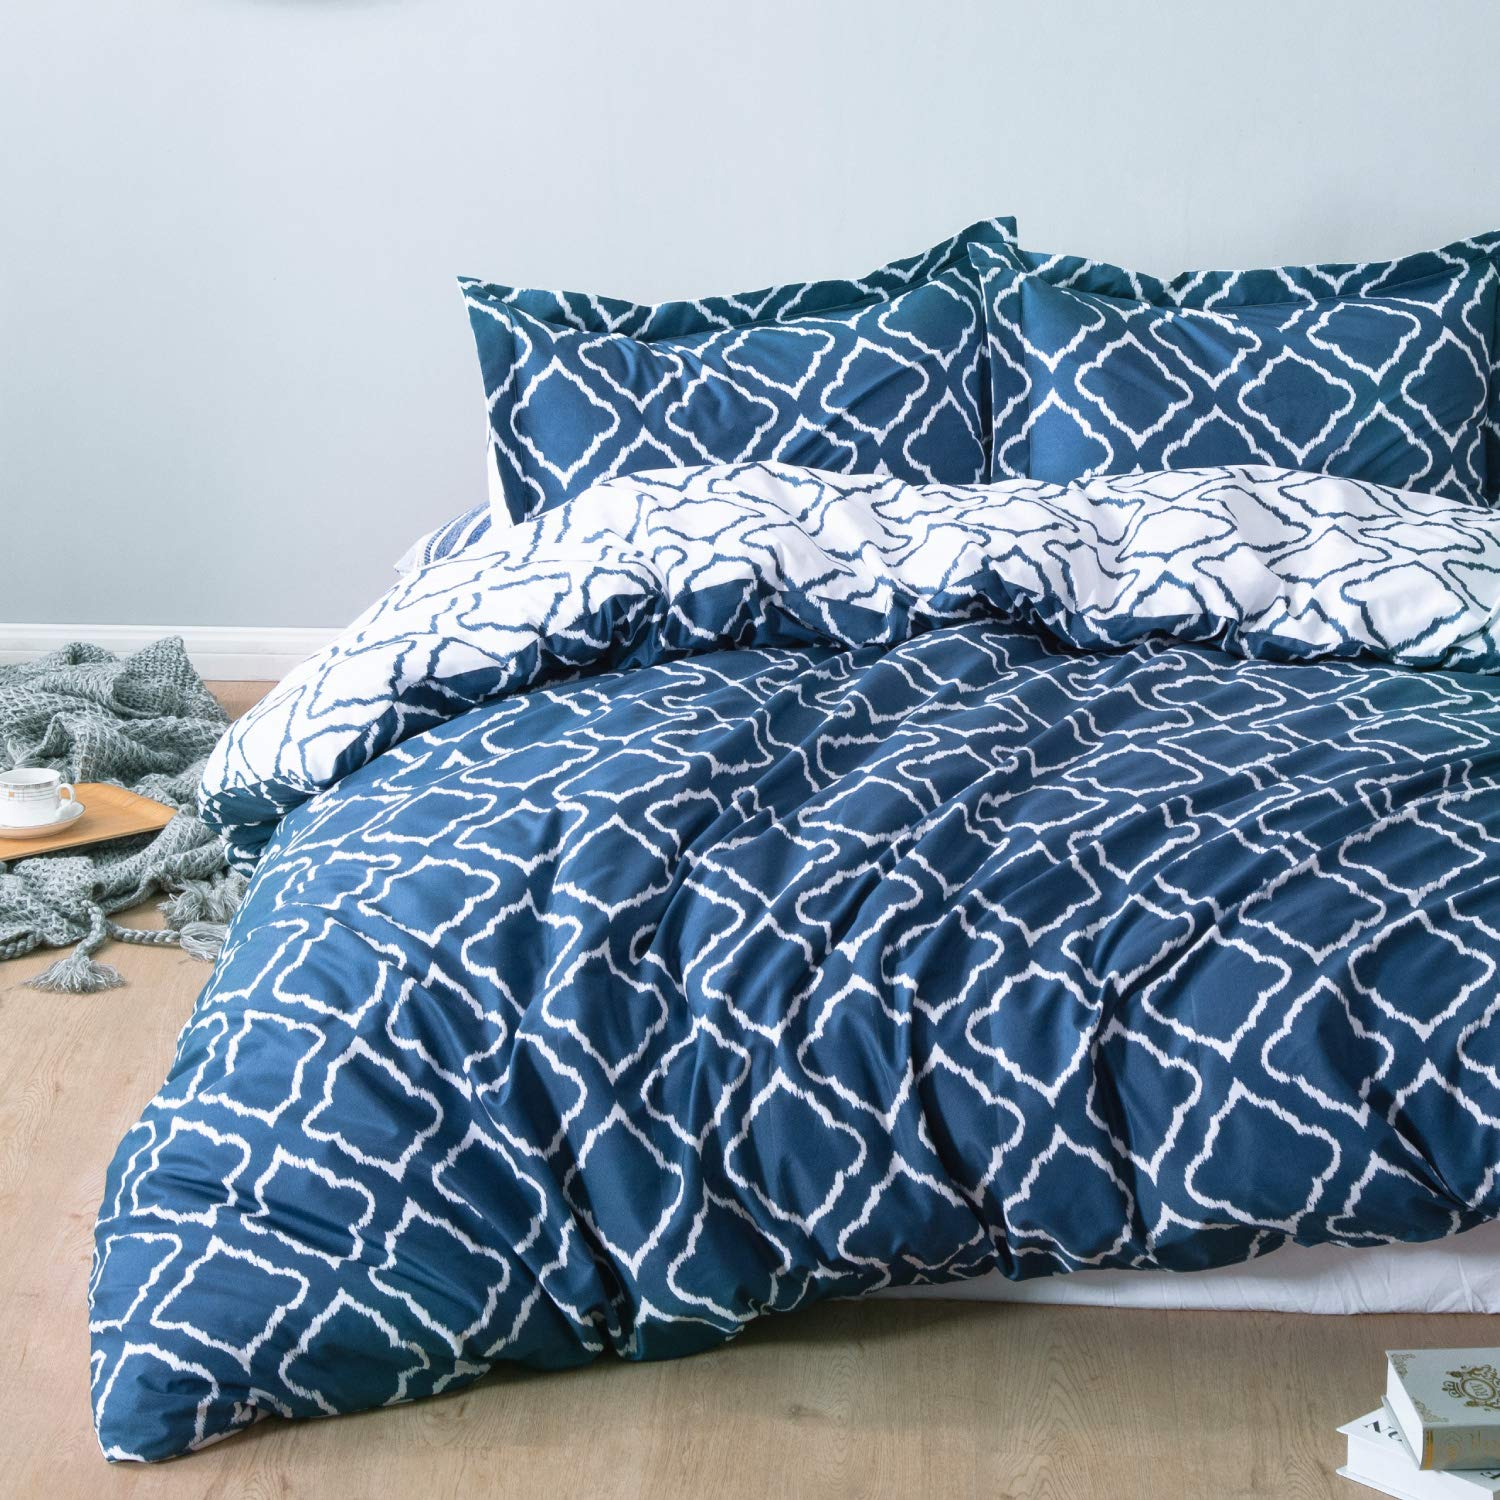 Bedsure Bedding Printed Duvet Cover Set (King Size 104x90 inches, Navy) 3 Pieces (1 Duvet Cover + 2 Pillow Sham) - Ultra Soft Brushed Microfiber - Comforter Quilt Cover with Zipper Closure,Corner Ties